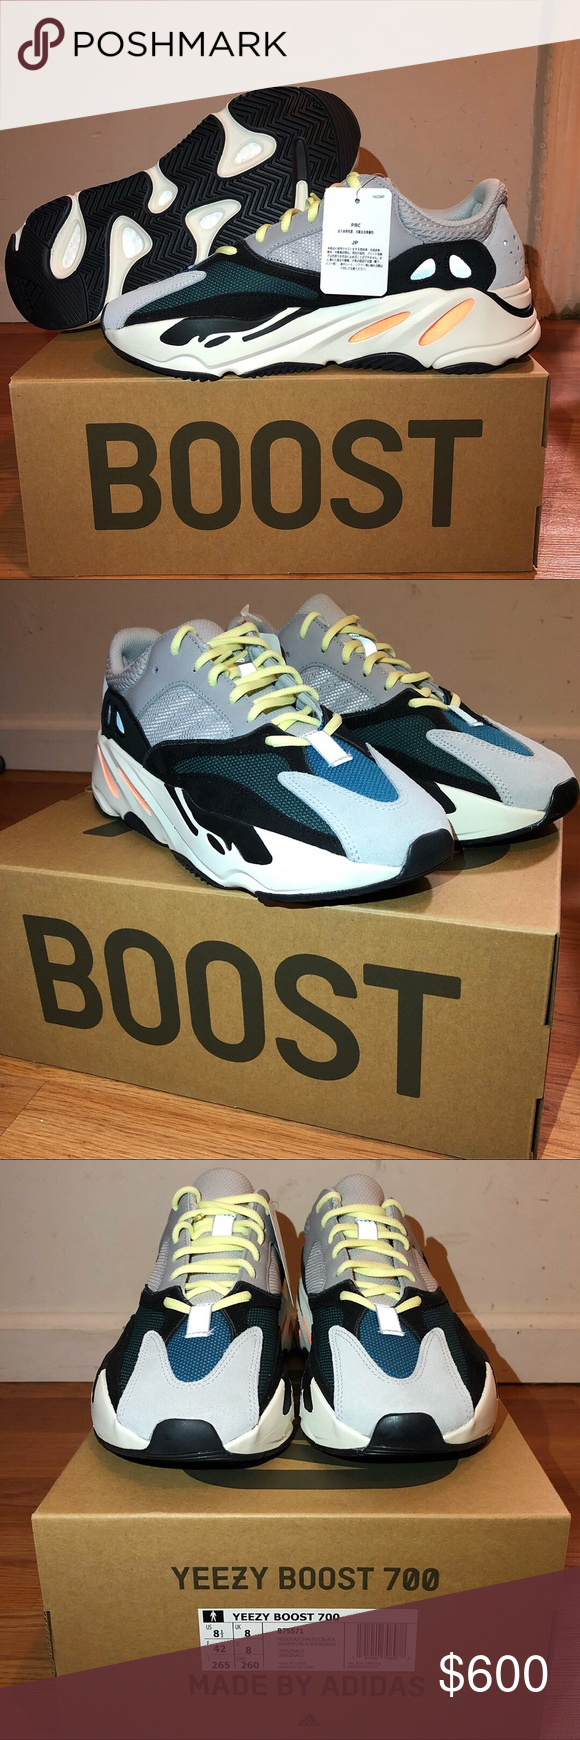 0337c3500 Adidas Yeezy Boost 700 Waverunner size US 8.5 Brand NEW! Size US 8.5 Ready  to ship  taking offers Yeezy Shoes Sneakers